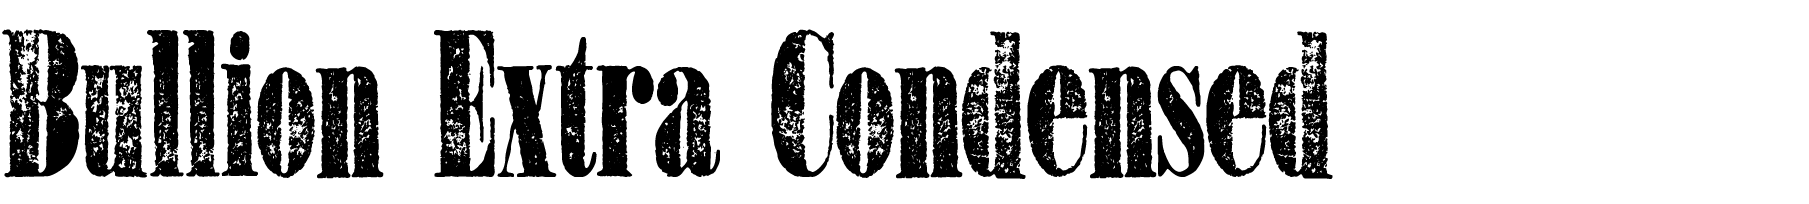 A Wild West style font called Bullion Extra Condensed from the Walden Font Co. It is part of the Wild West Press set of fonts.